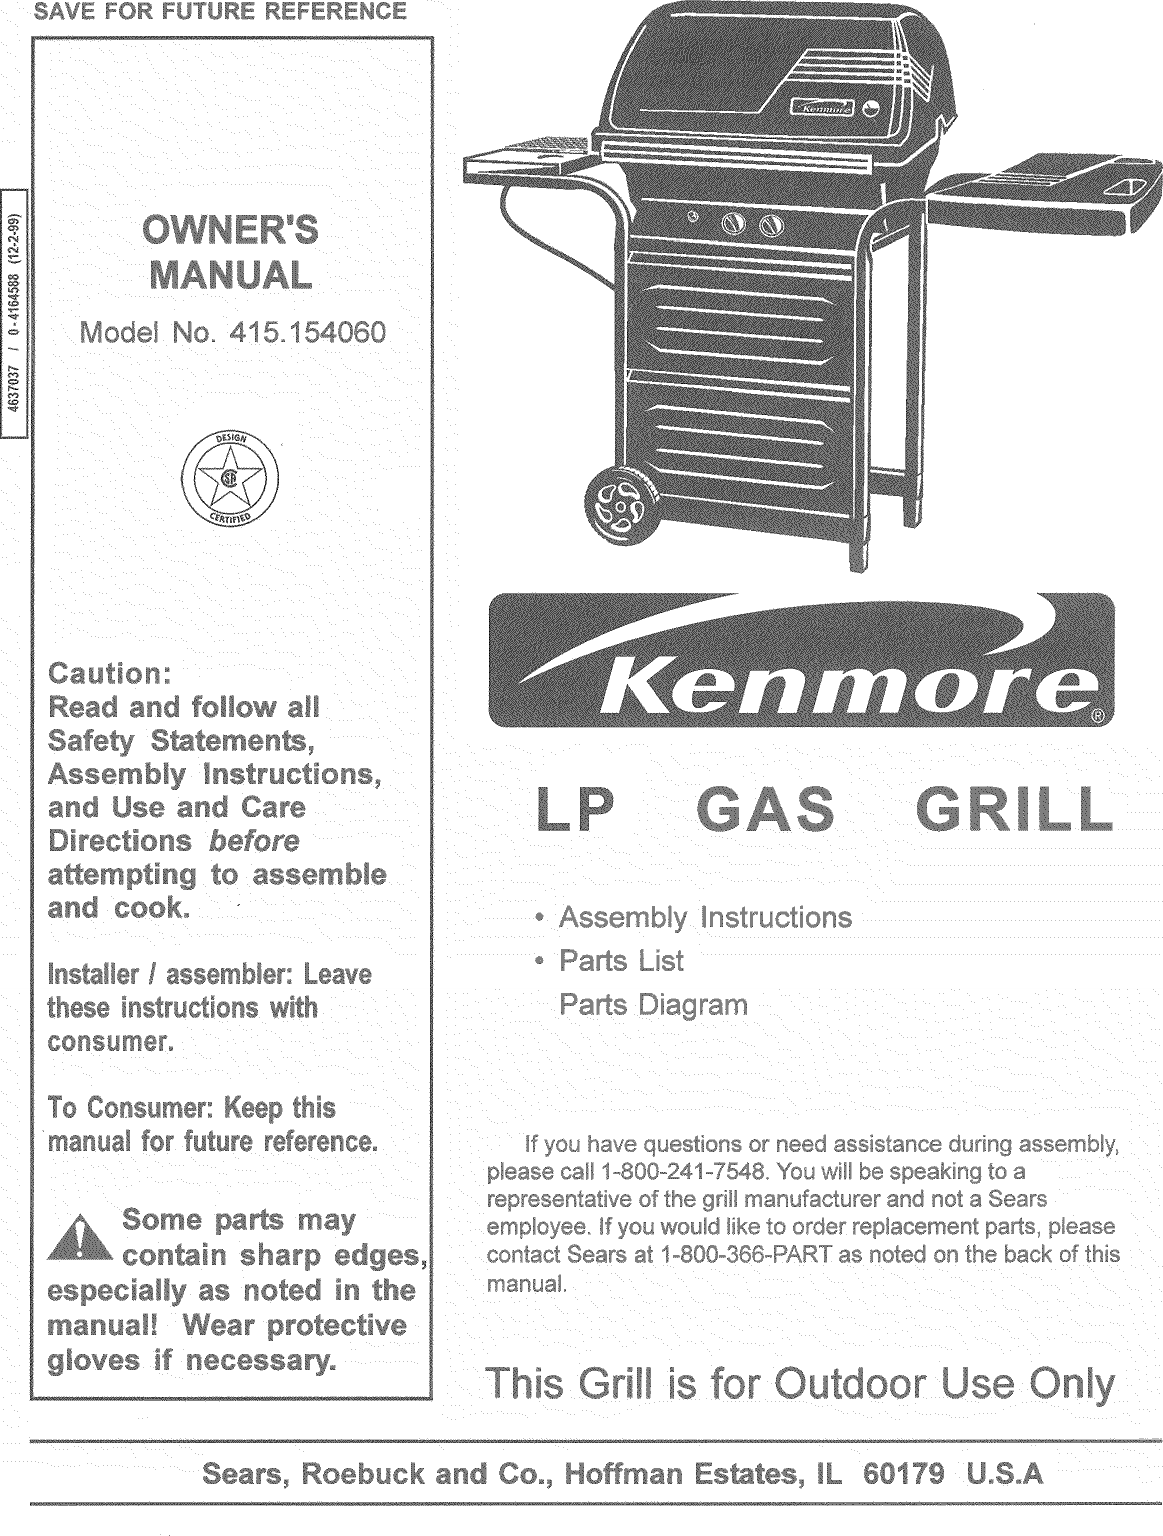 Kenmore 415154060 User Manual GAS GRILL Manuals And Guides